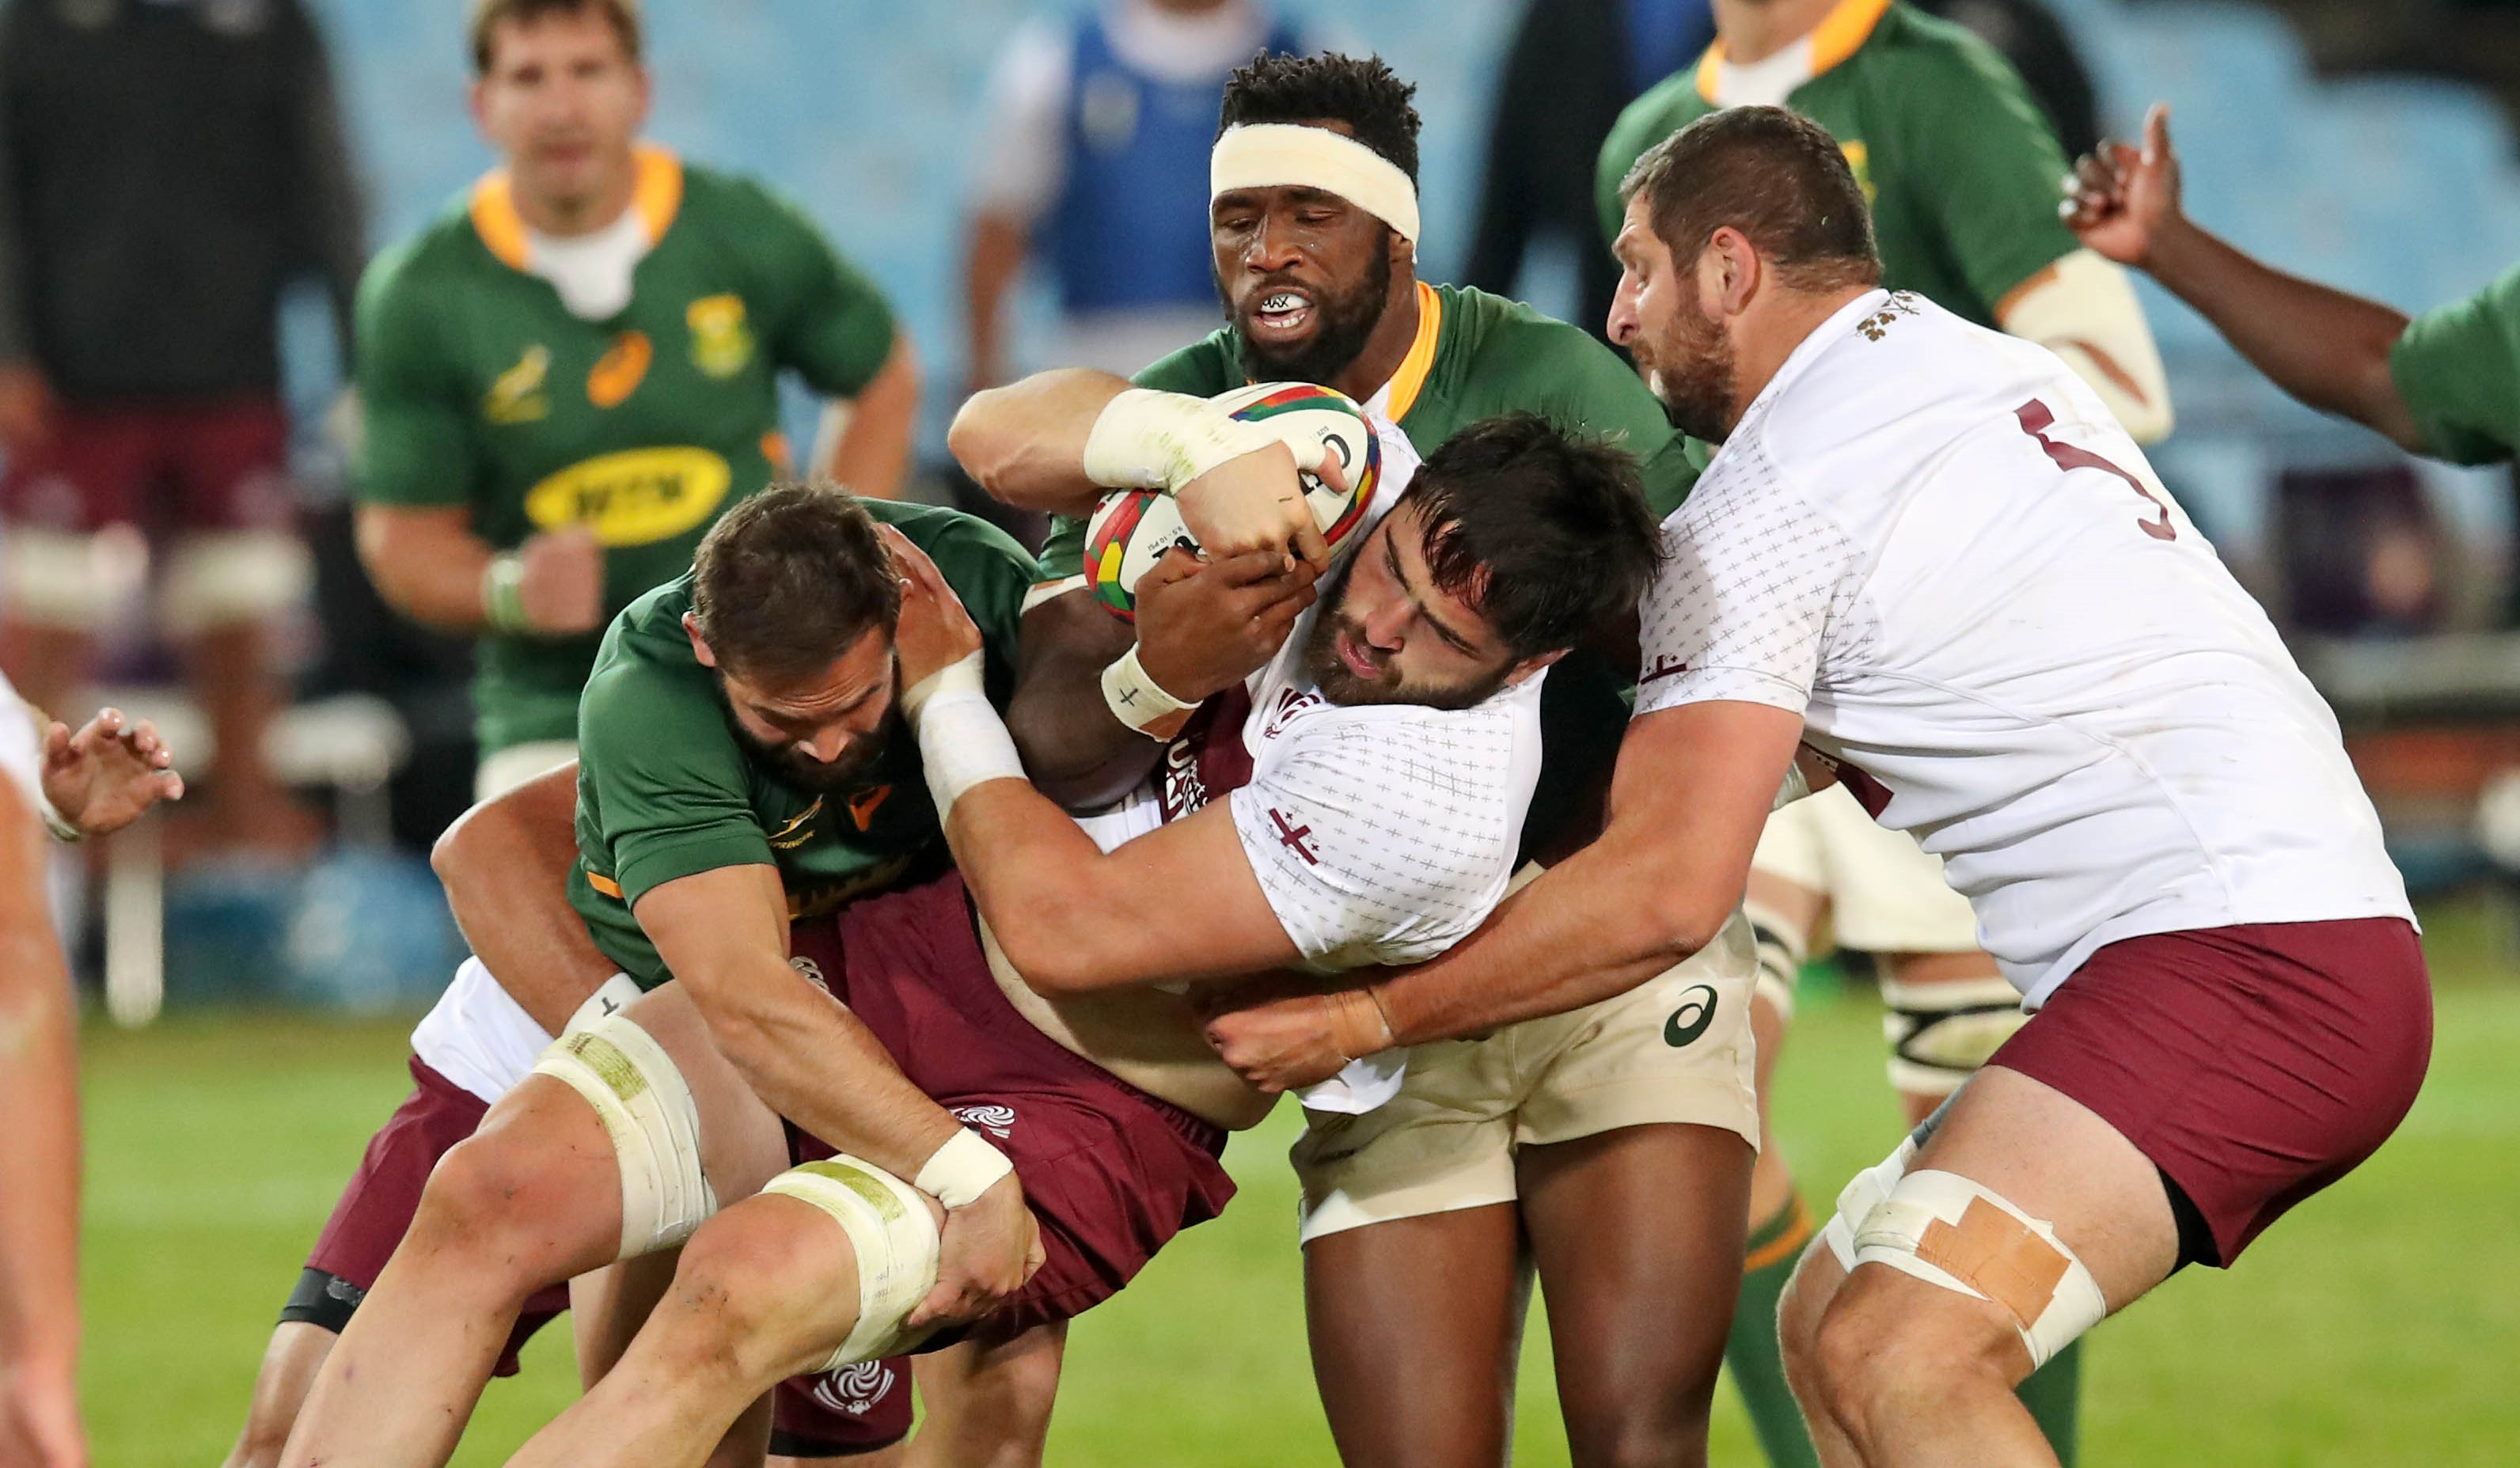 Beka Saginadze of Georgia is tackled by Cobus Reinach and Siya Kolisi of South Africa during the 2021 International Test Match Rugby Series between South Africa and Georgia at Loftus Stadium, Pretoria on 02 July 2021 ©Gavin Barker/BackpagePix